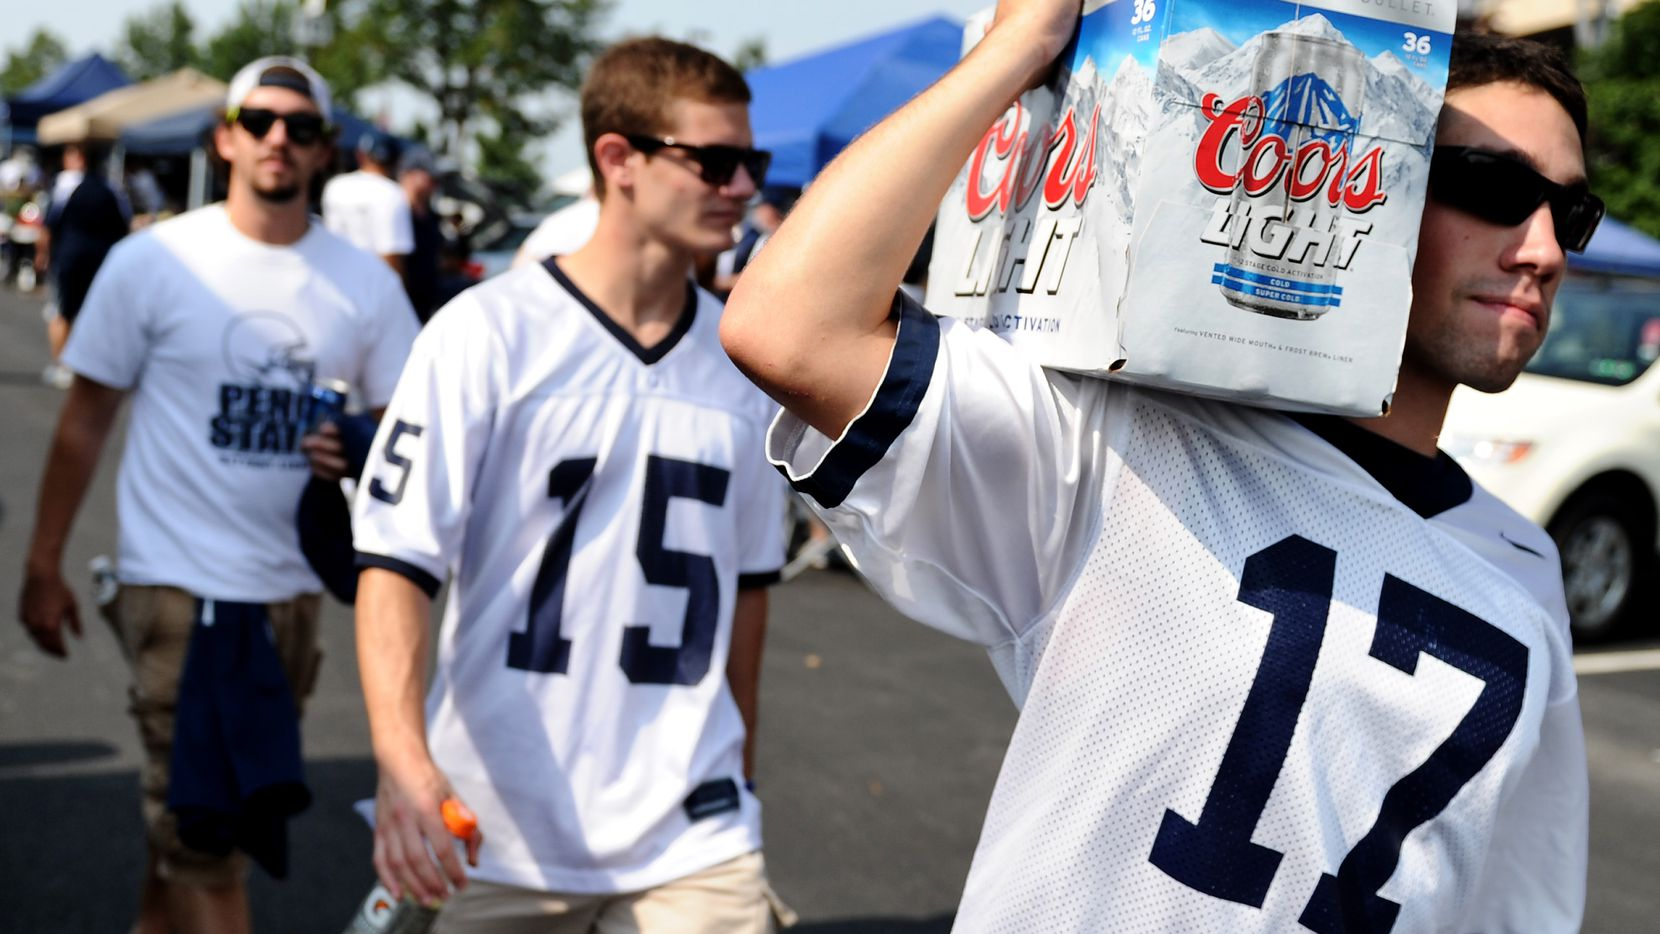 STATE COLLEGE, PA - SEPTEMBER 01: Penn State tailgaters walks with beer in the parking lot prior to the Penn State Nittany Lions playing the Ohio Bobcats at Beaver Stadium on September 1, 2012 in State College, Pennsylvania.